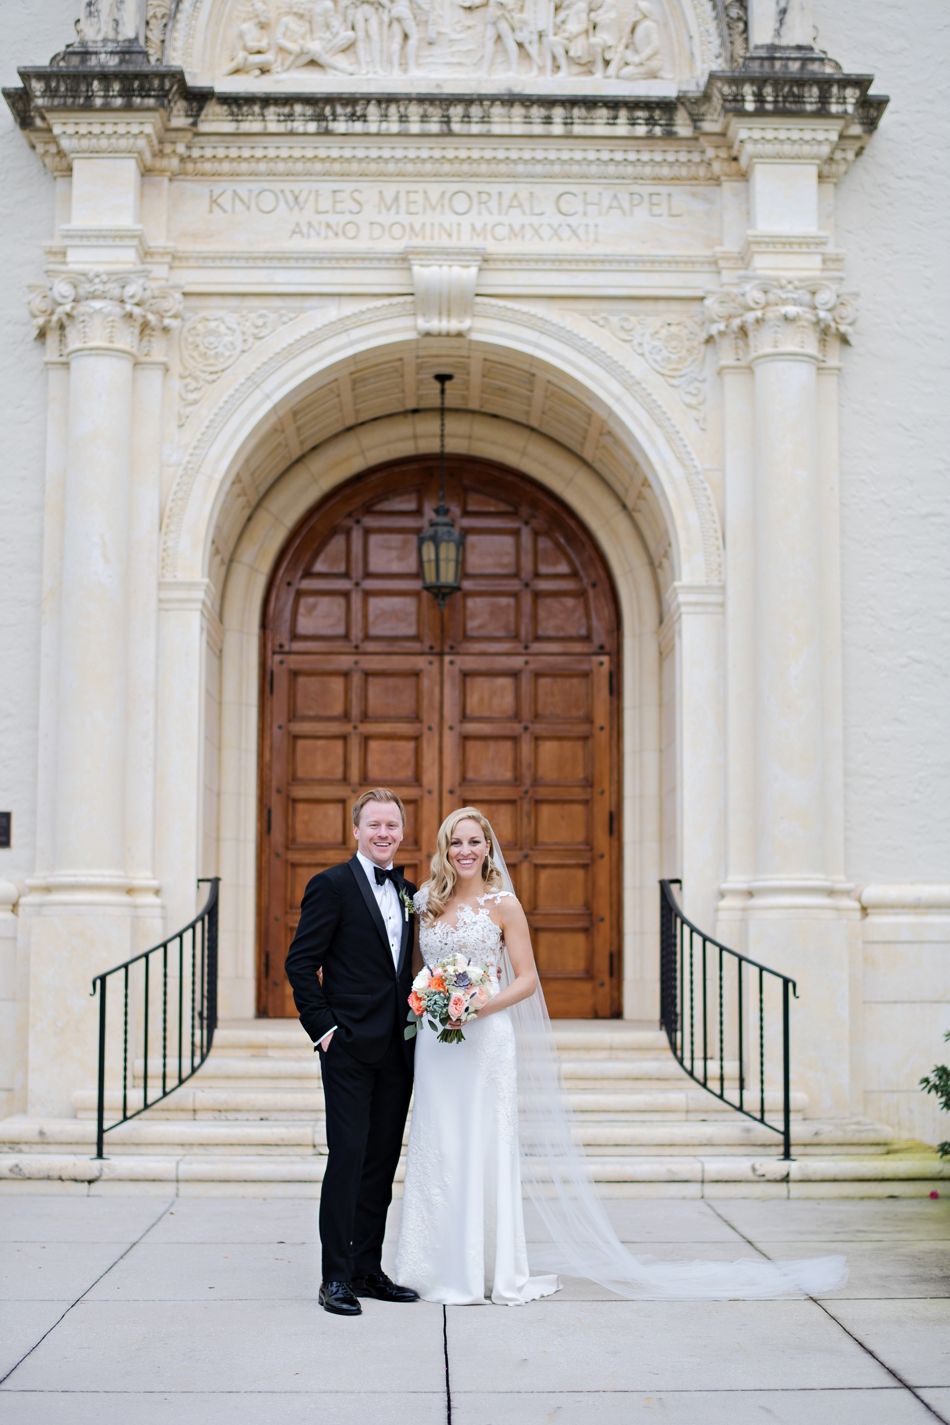 knowles memorial chapel wedding